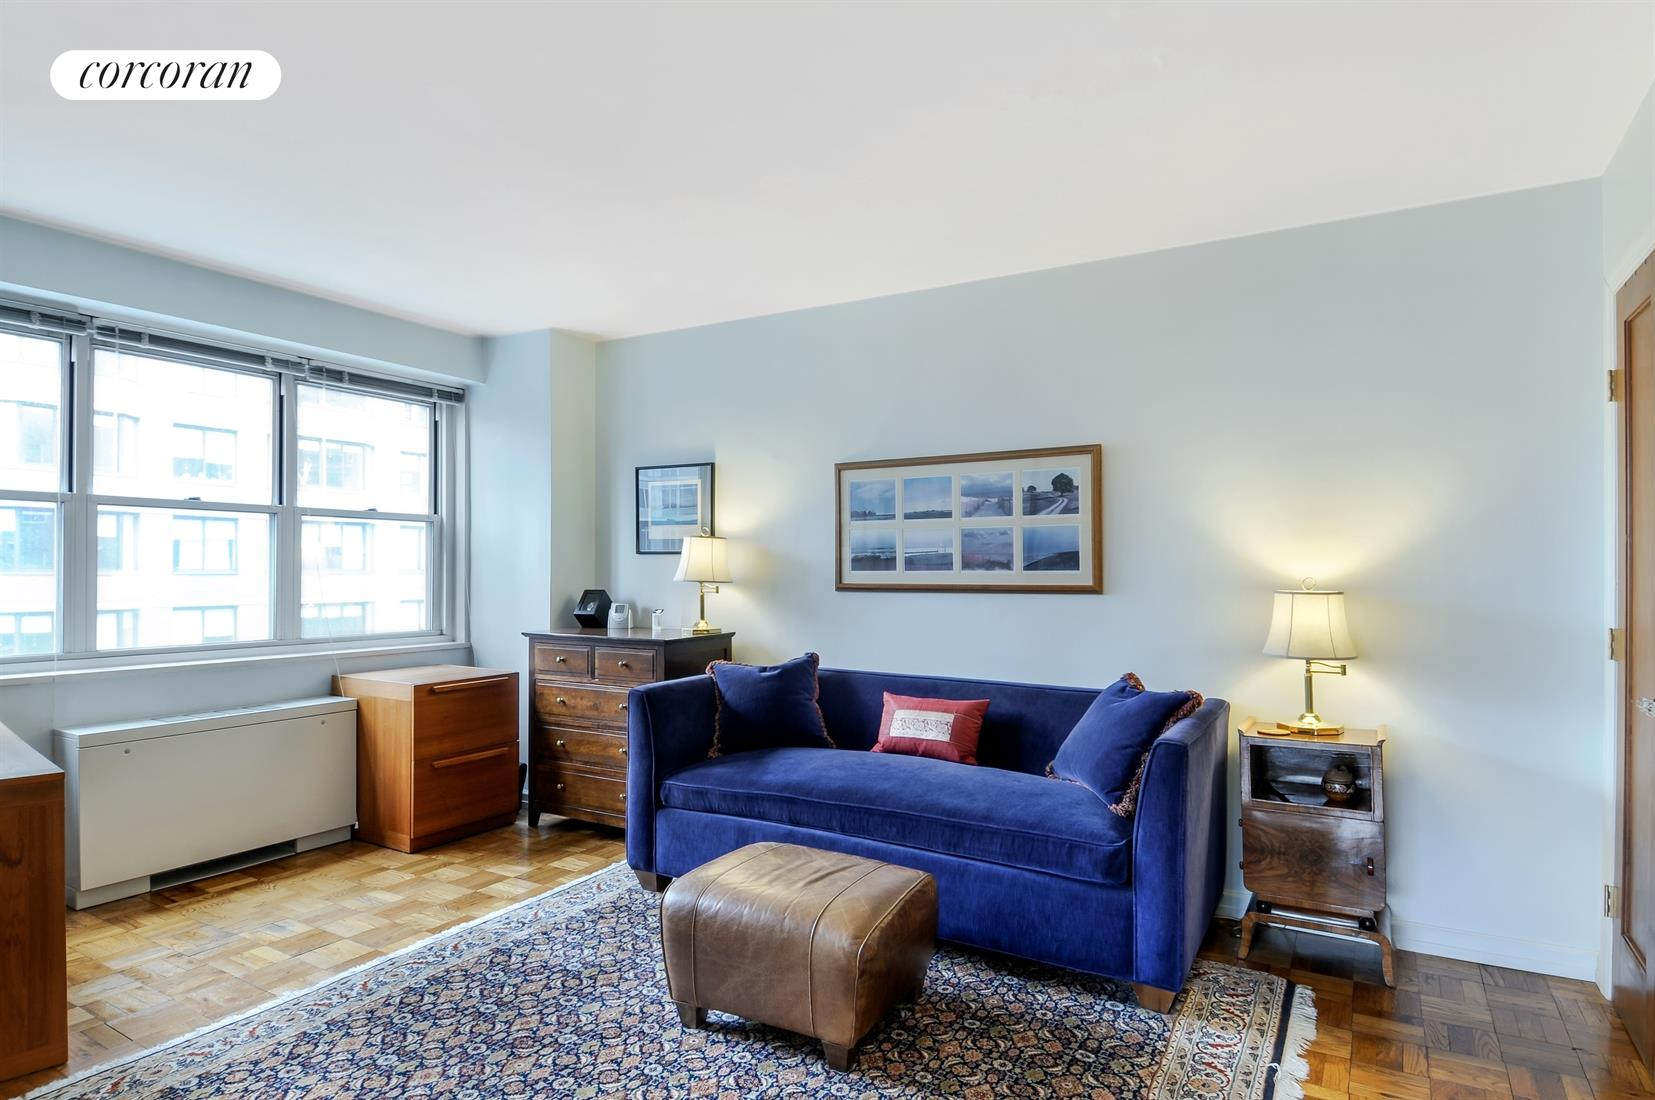 Corcoran, 165 East 32nd Street, Apt. 12E, Murray Hill Real Estate ...